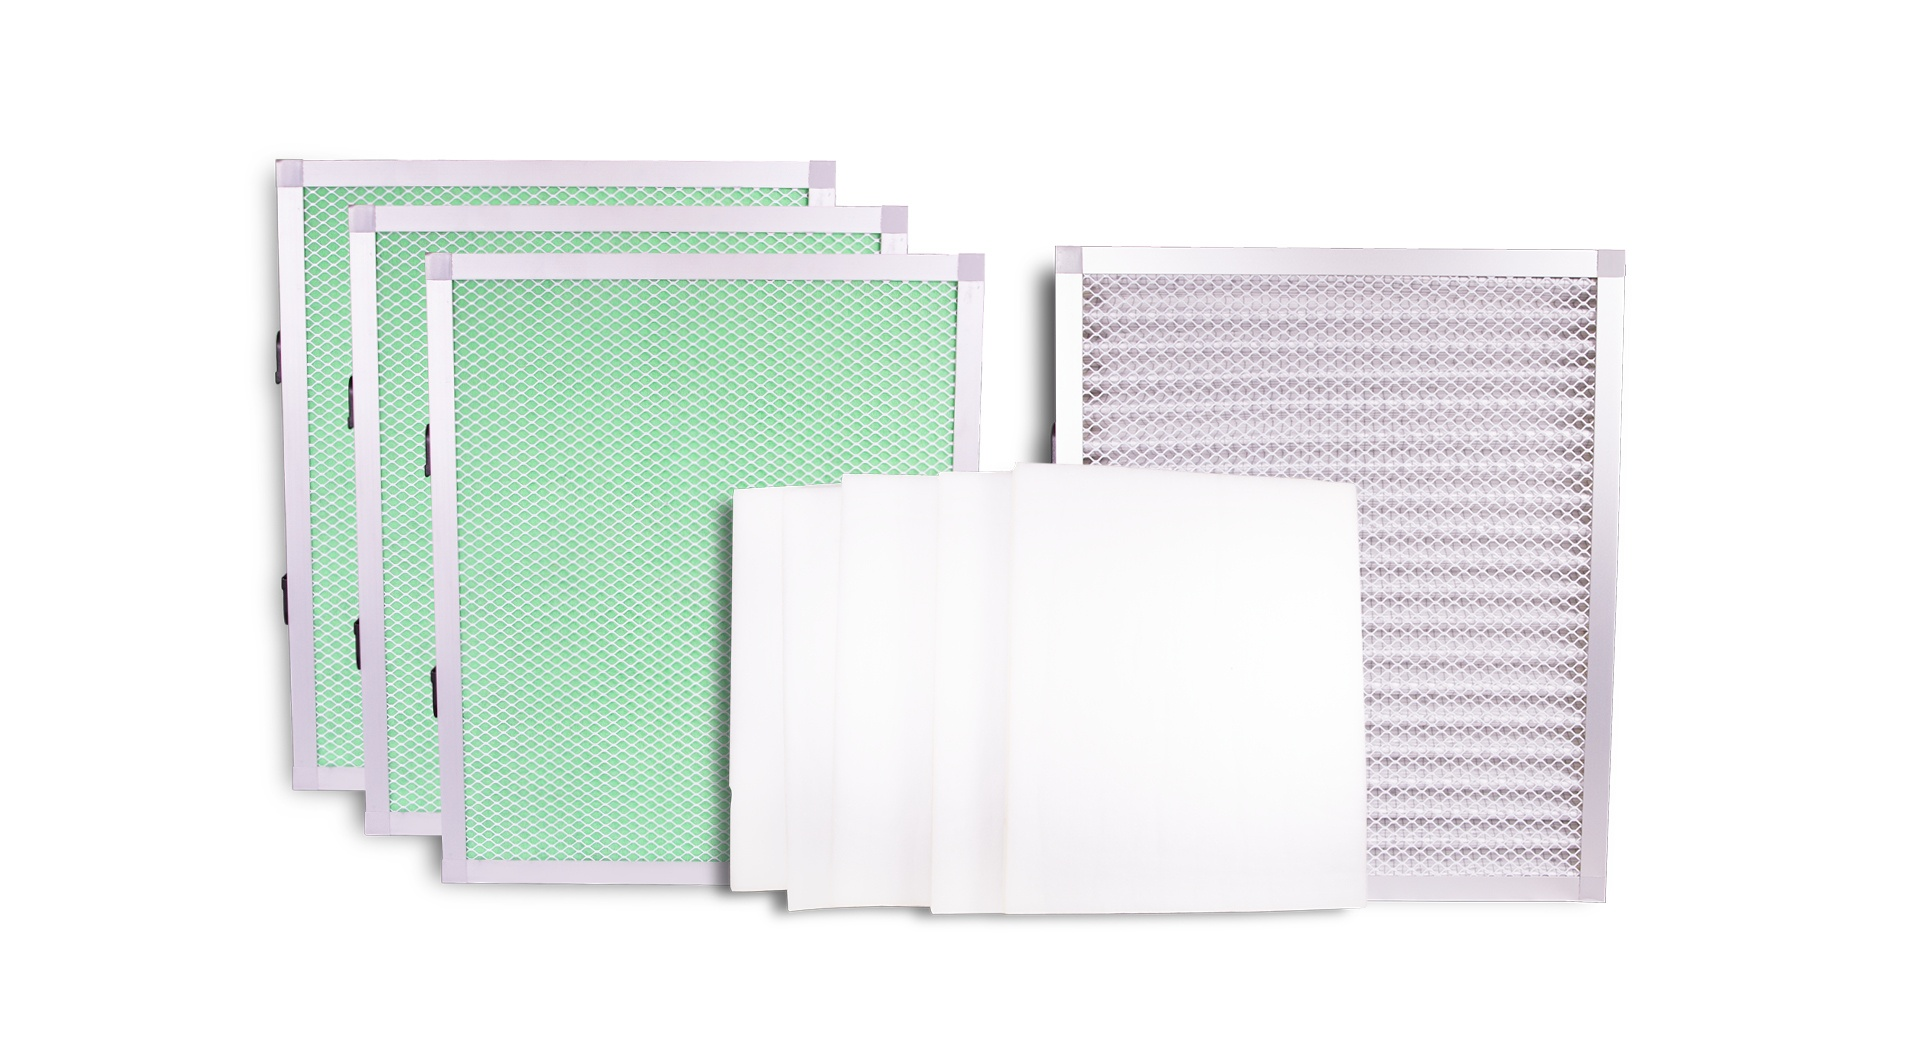 Fume Filters 2-1